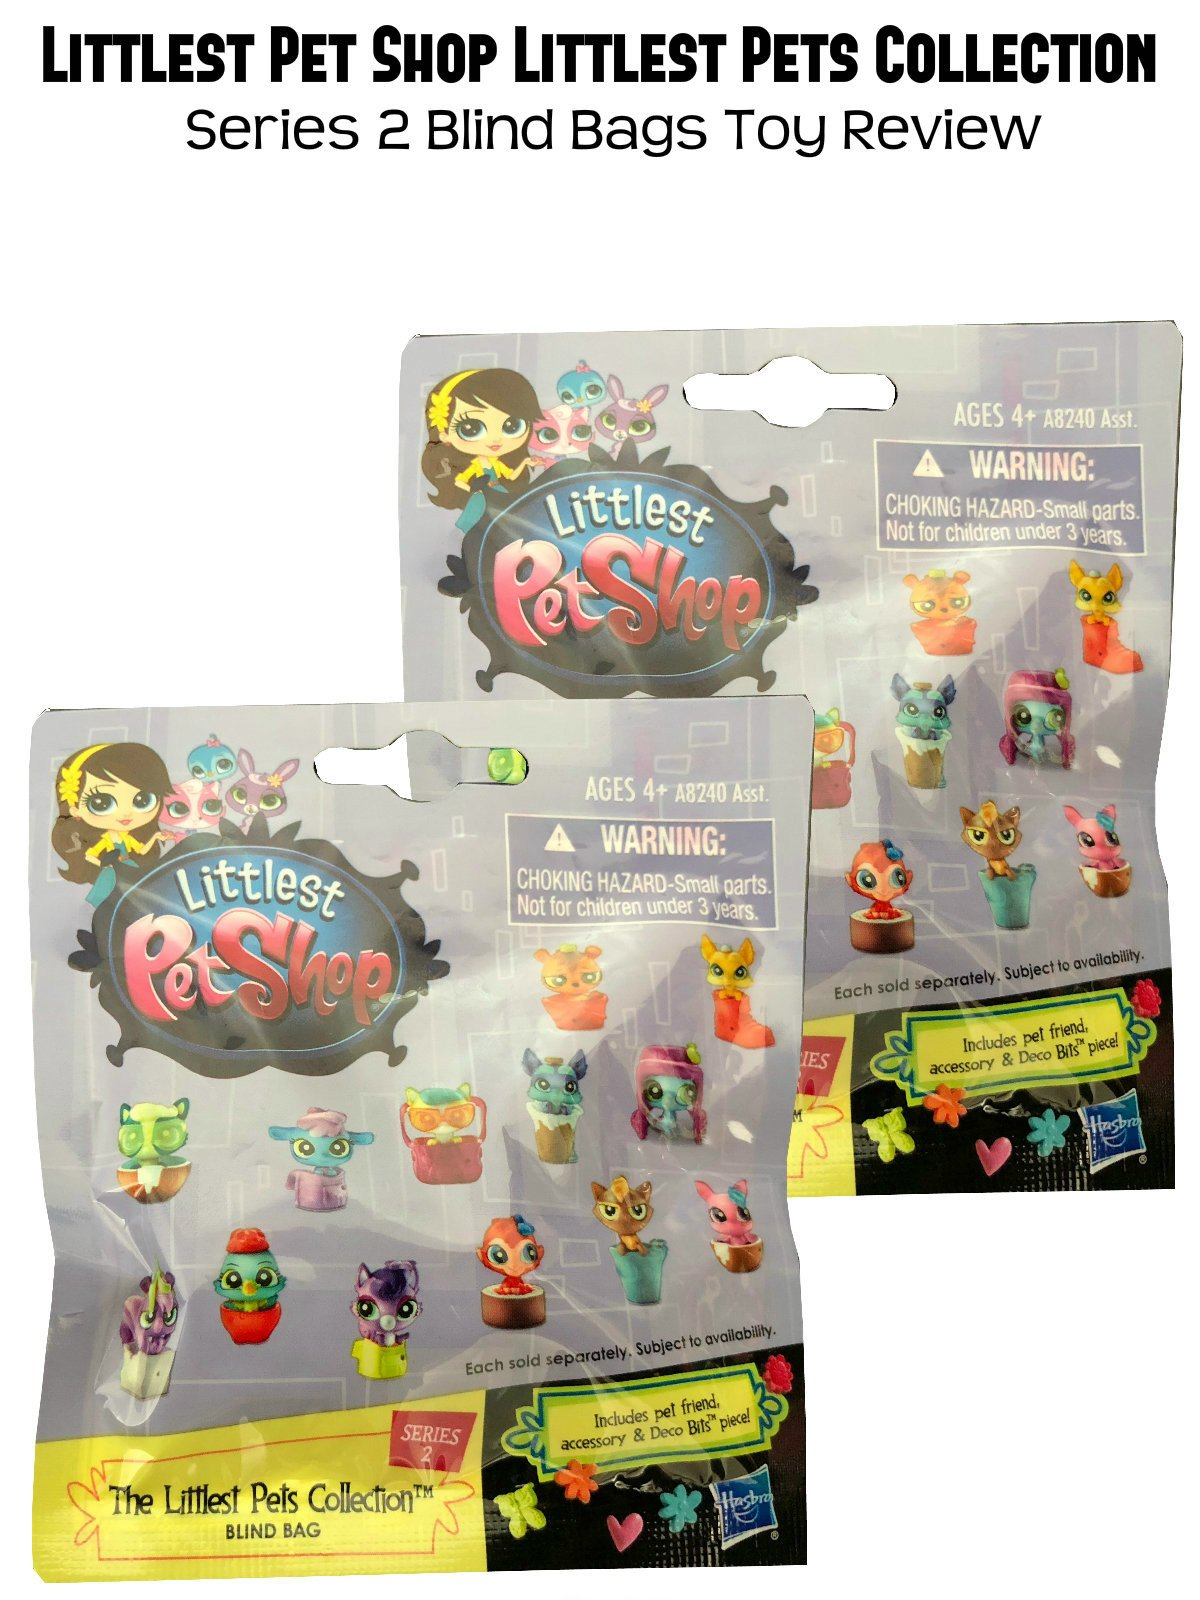 Review: Littlest Pet Shop Littlest Pets Collection Series 2 Blind Bags Toy Review on Amazon Prime Video UK